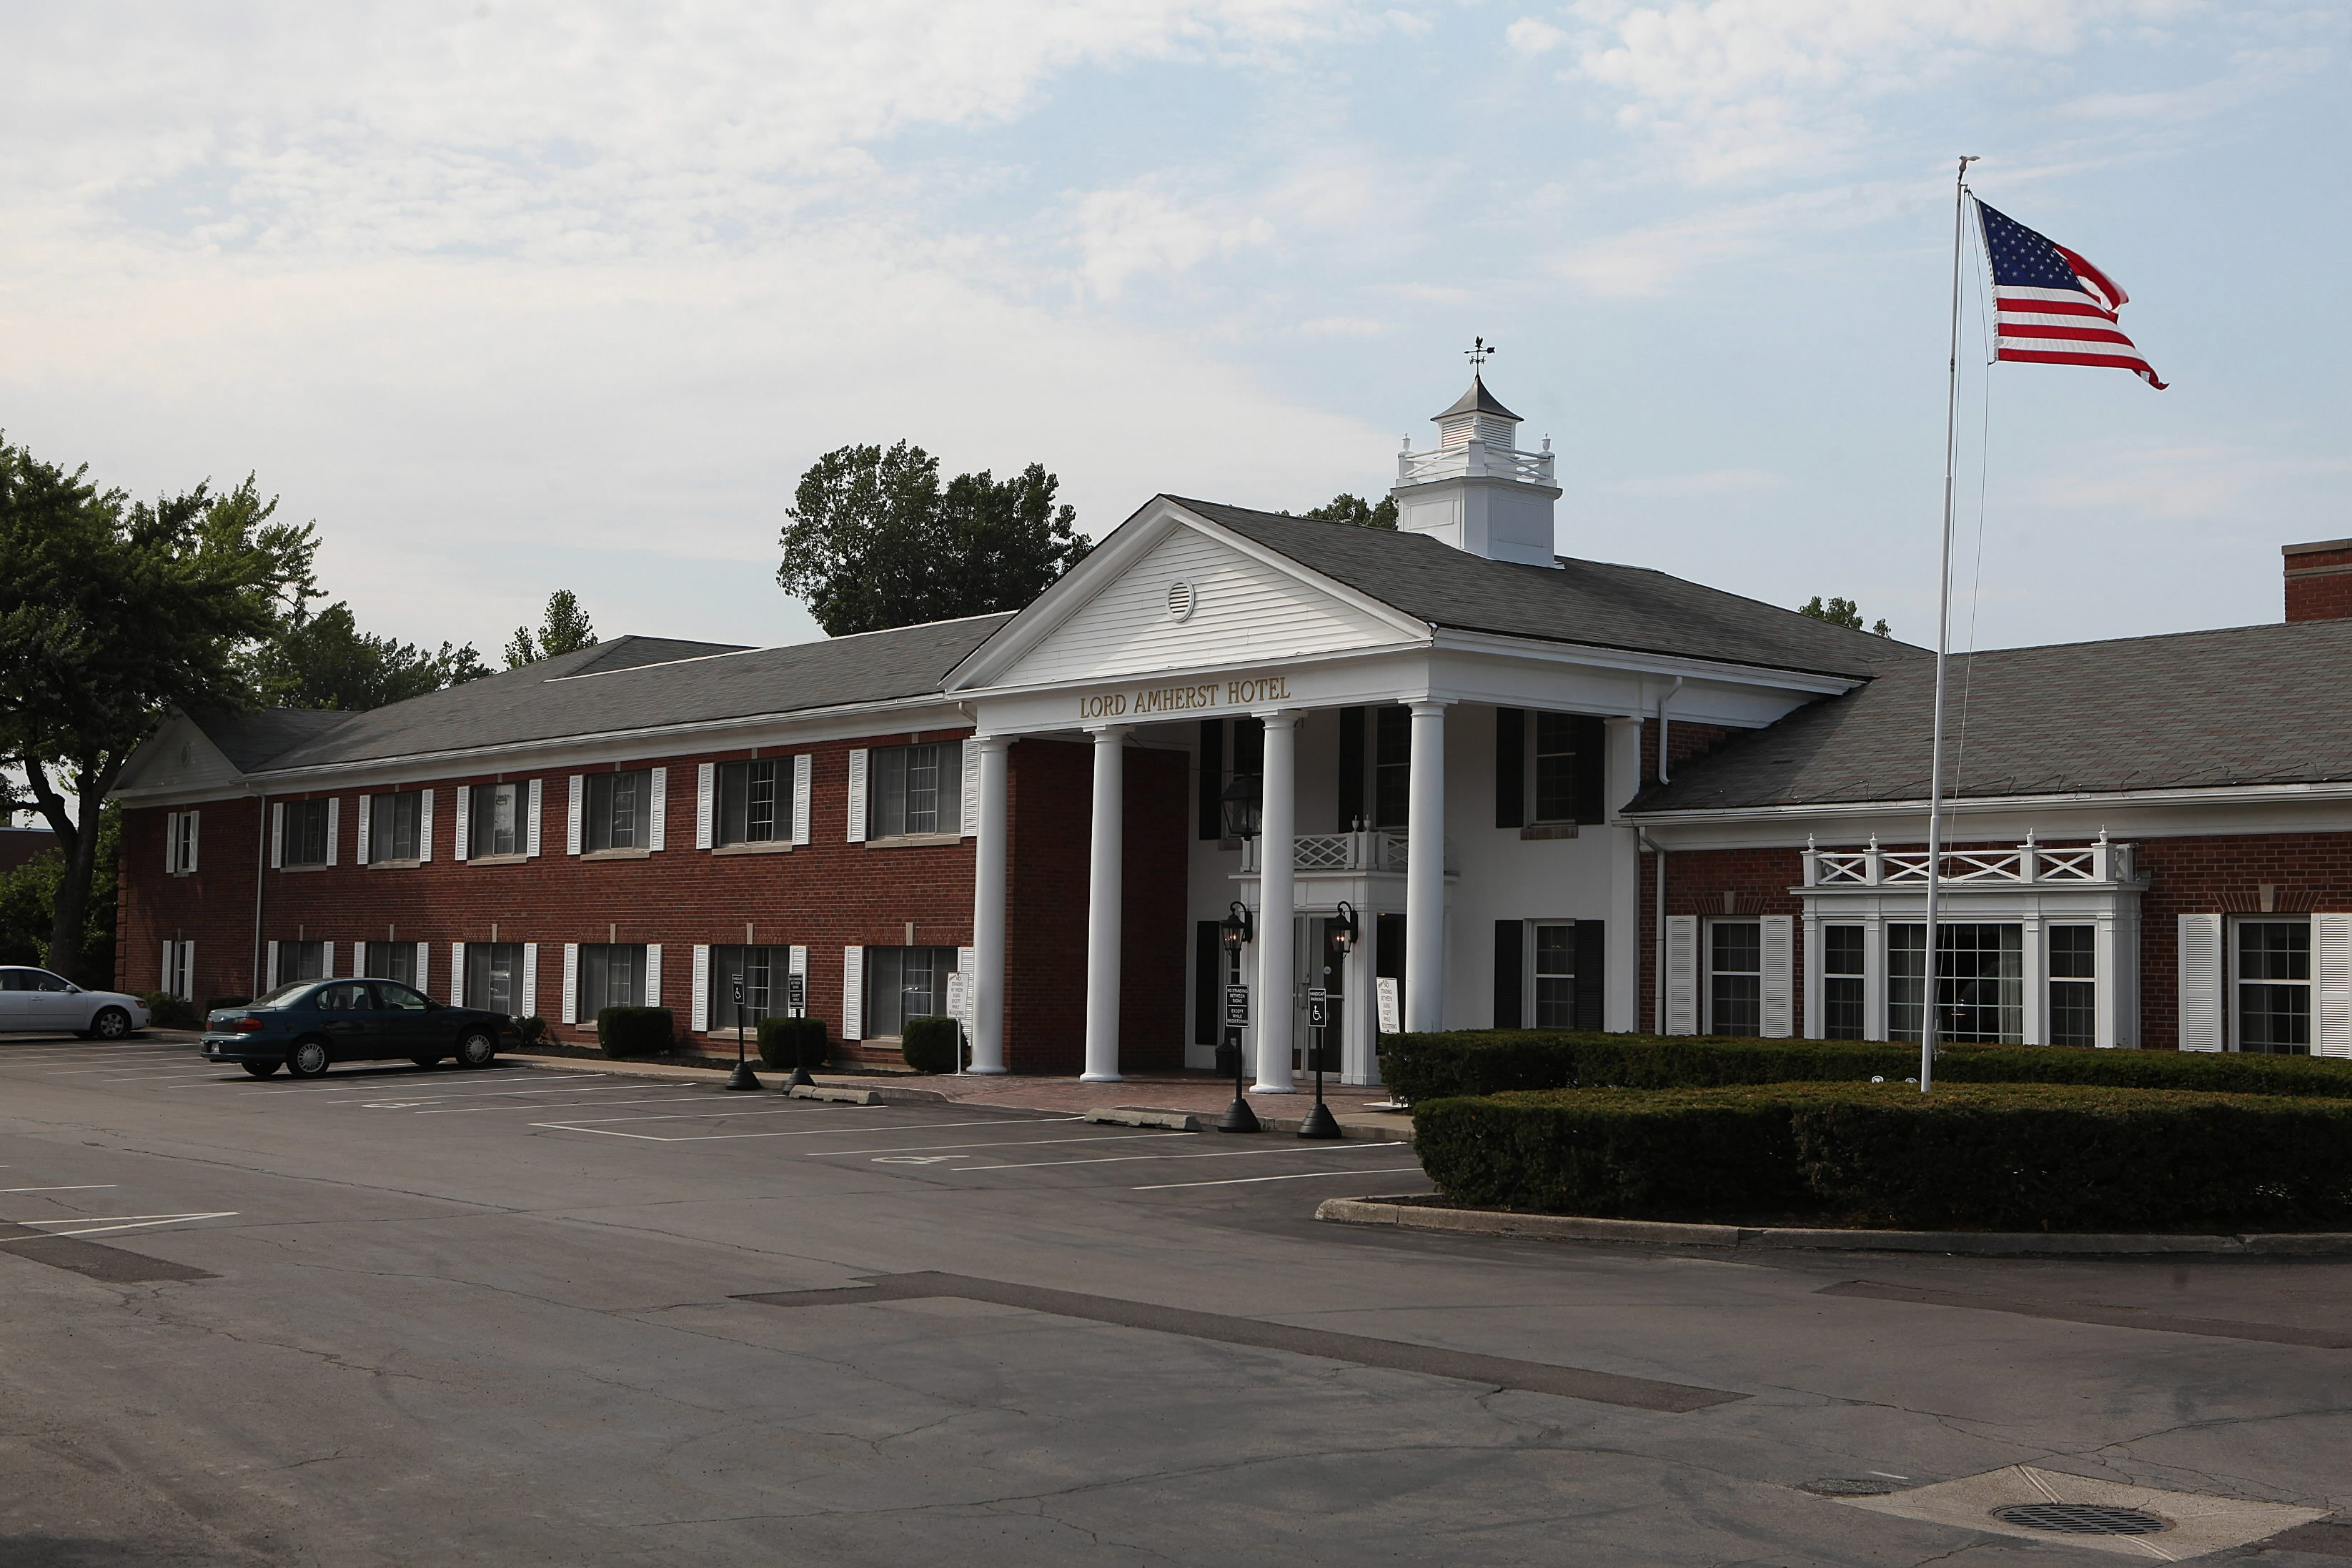 The Lord Amherst Hotel on Main Street in Amherst is closing on April 14 for major renovations.